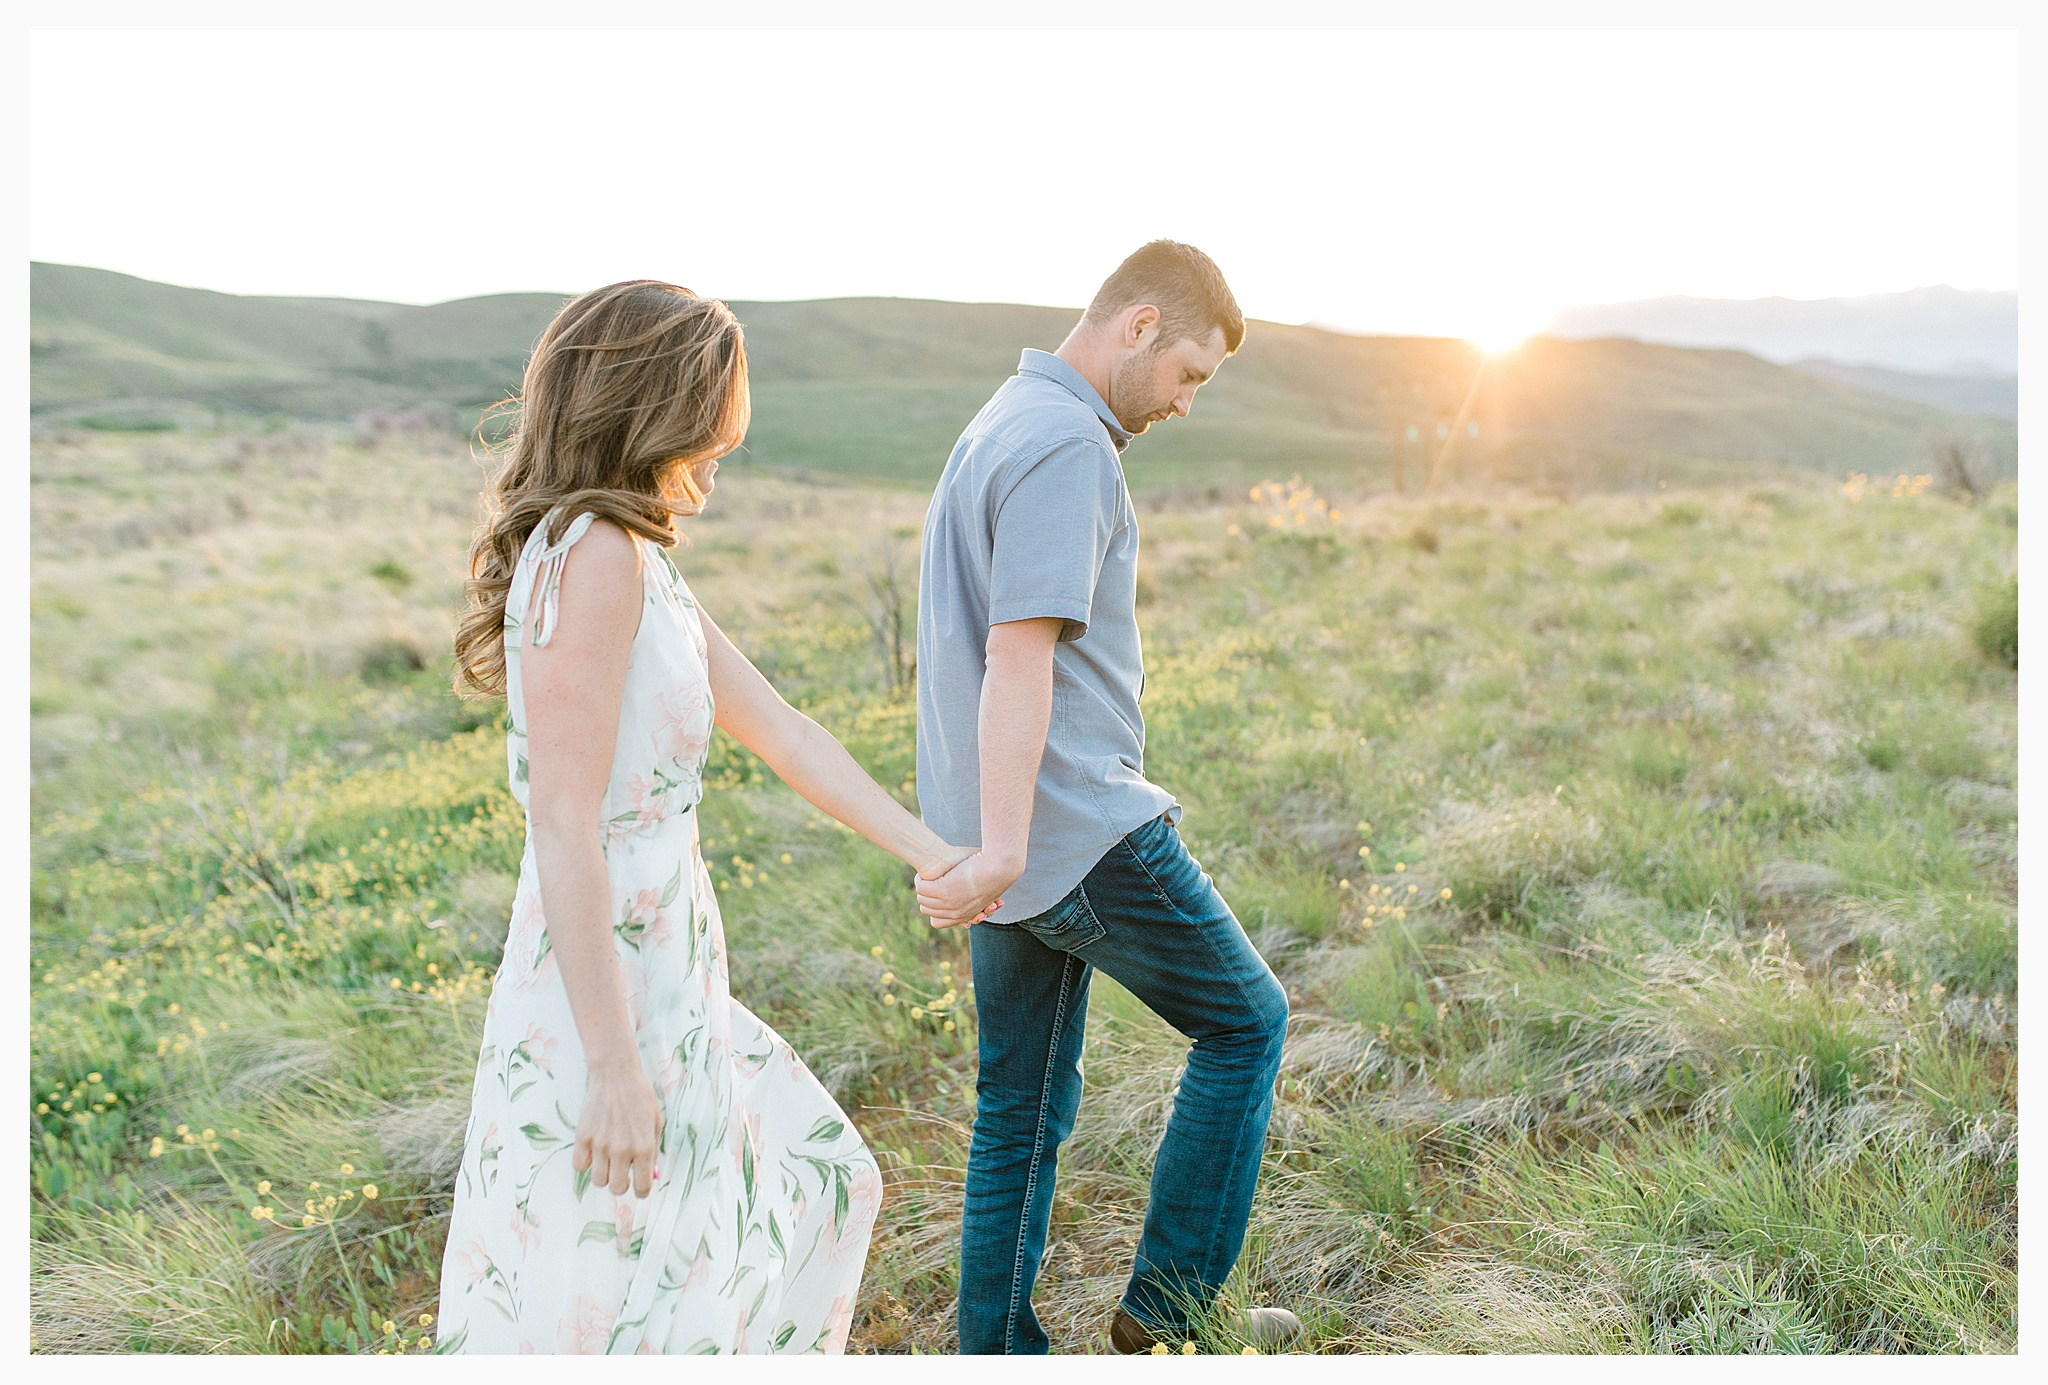 Engagement session amongst the wildflowers in Wenatchee, Washington | Engagement Session Outfit Inspiration for Wedding Photography with Emma Rose Company | Light and Airy PNW Photographer, Seattle Bride_0032.jpg